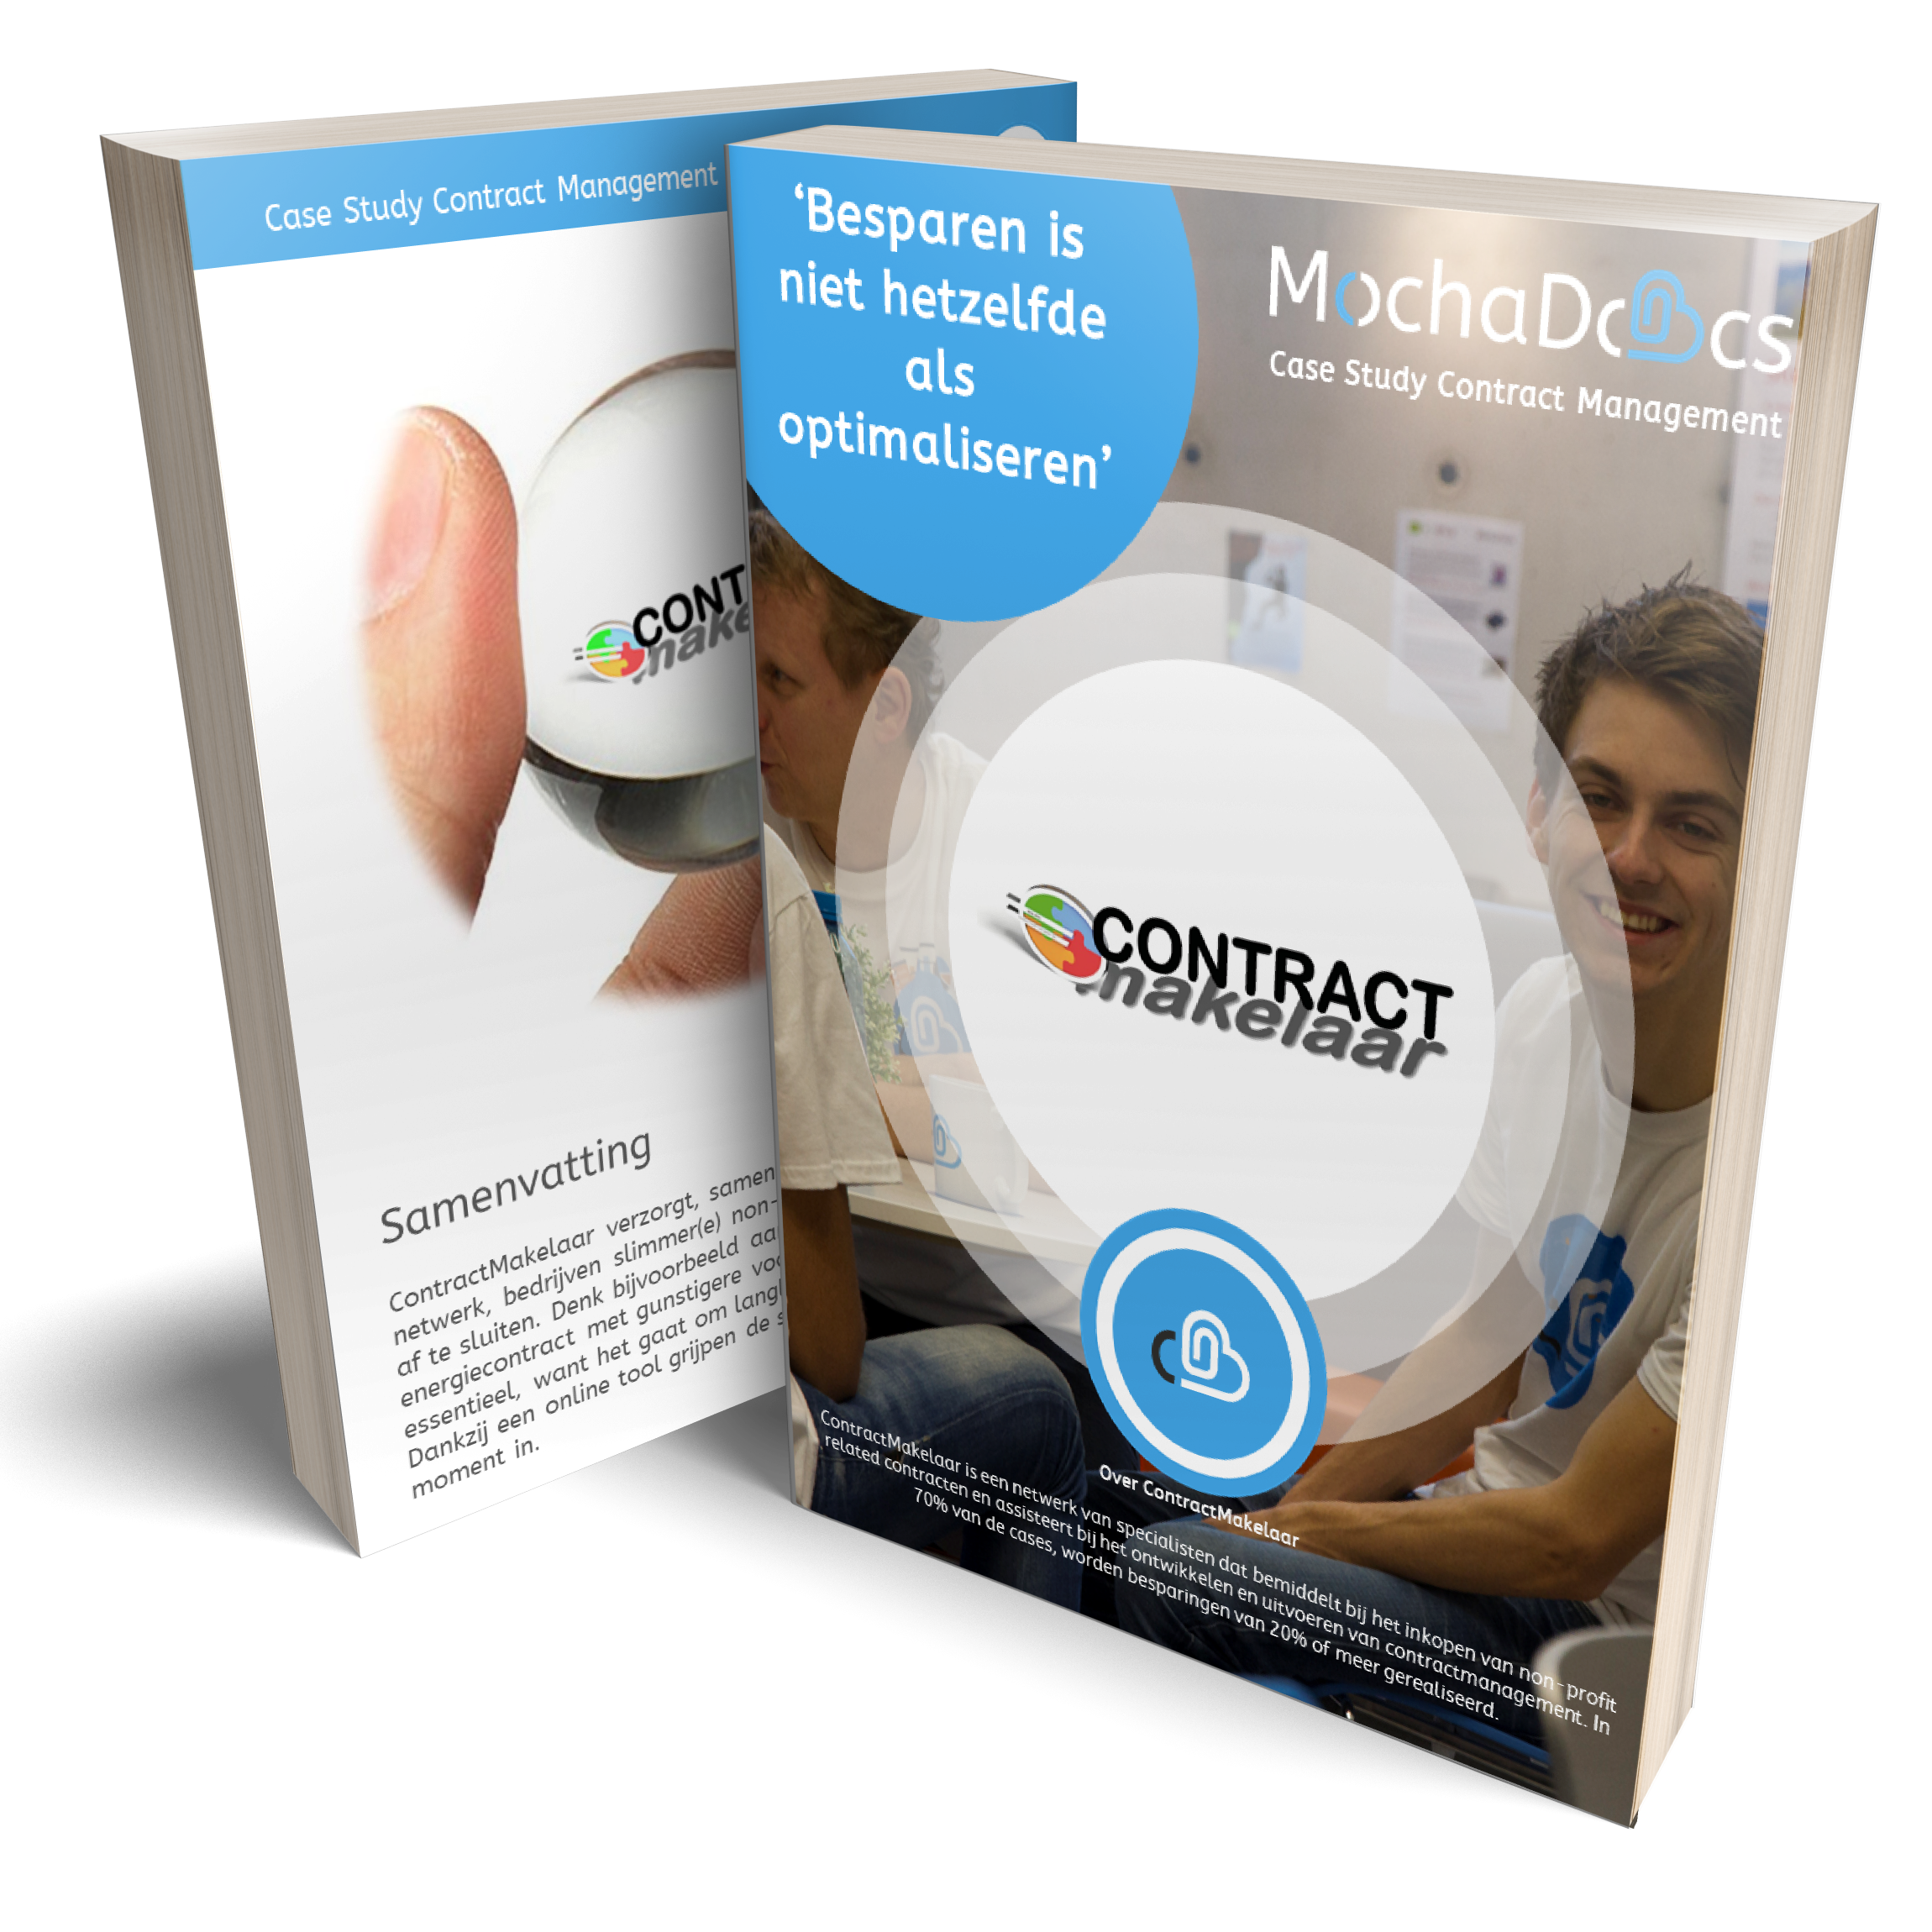 Case Study Contract Management: ContractMakelaar